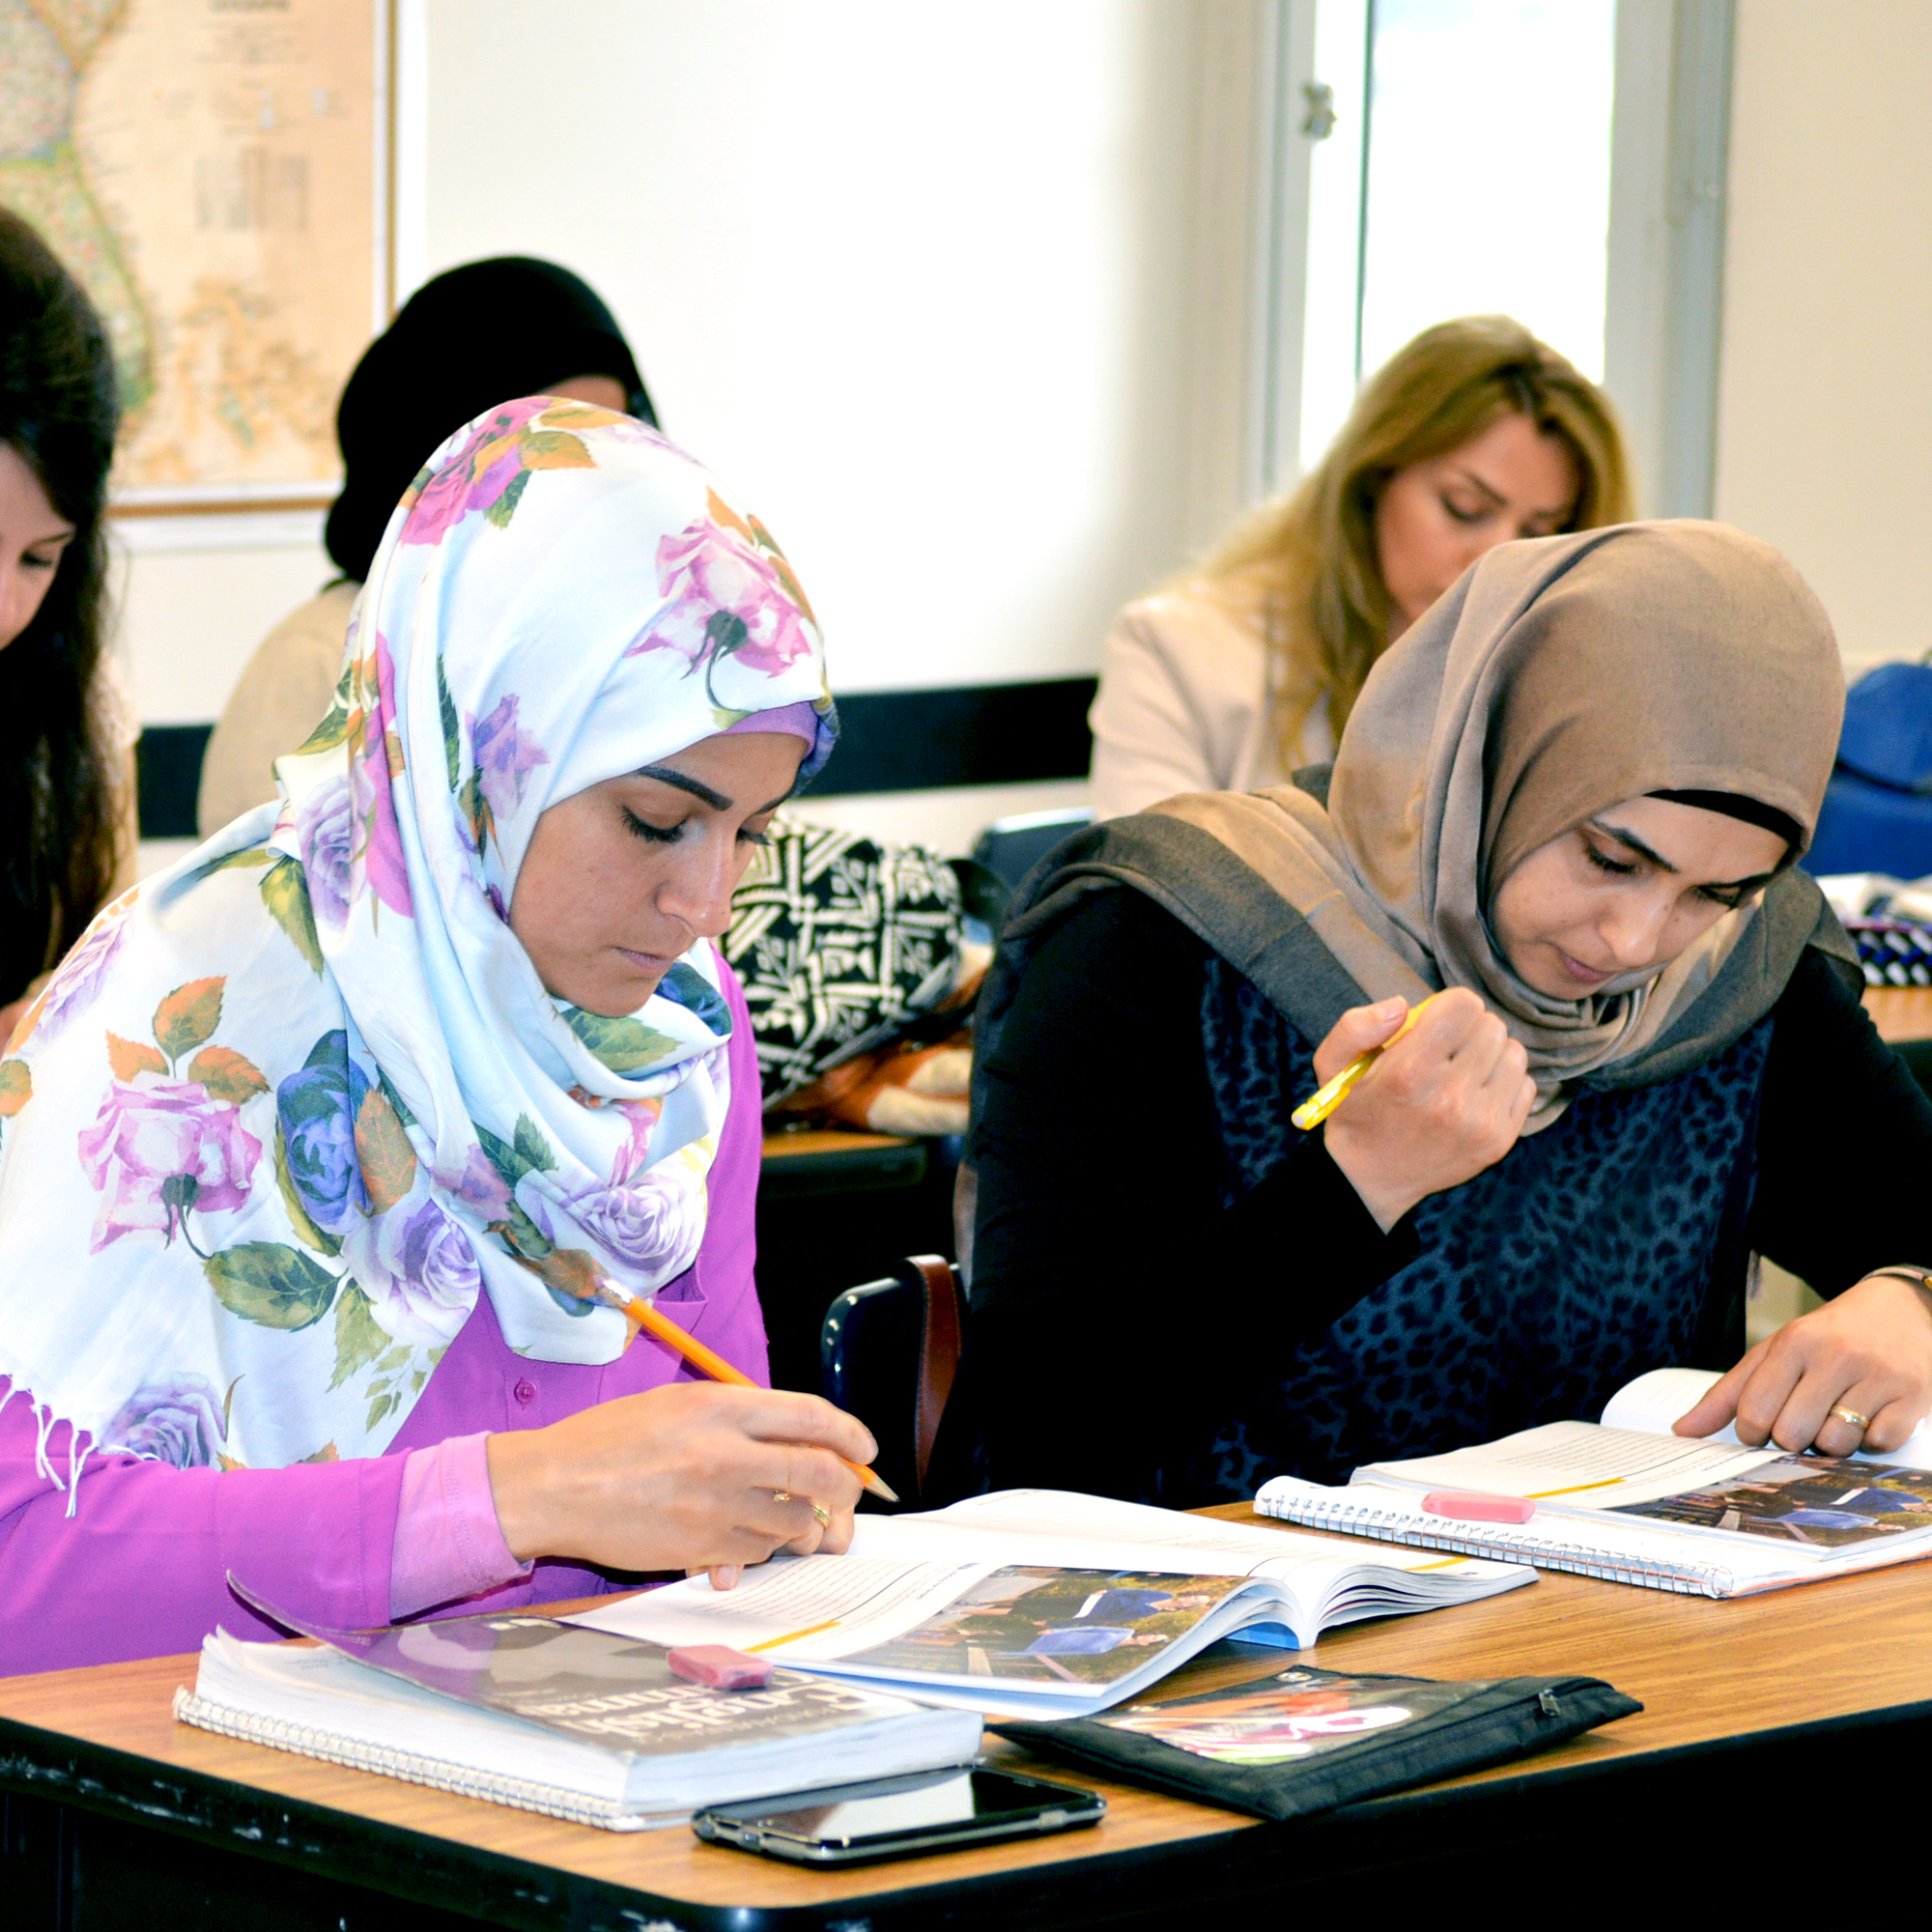 Group of students highlighting passages in textbooks in a classroom